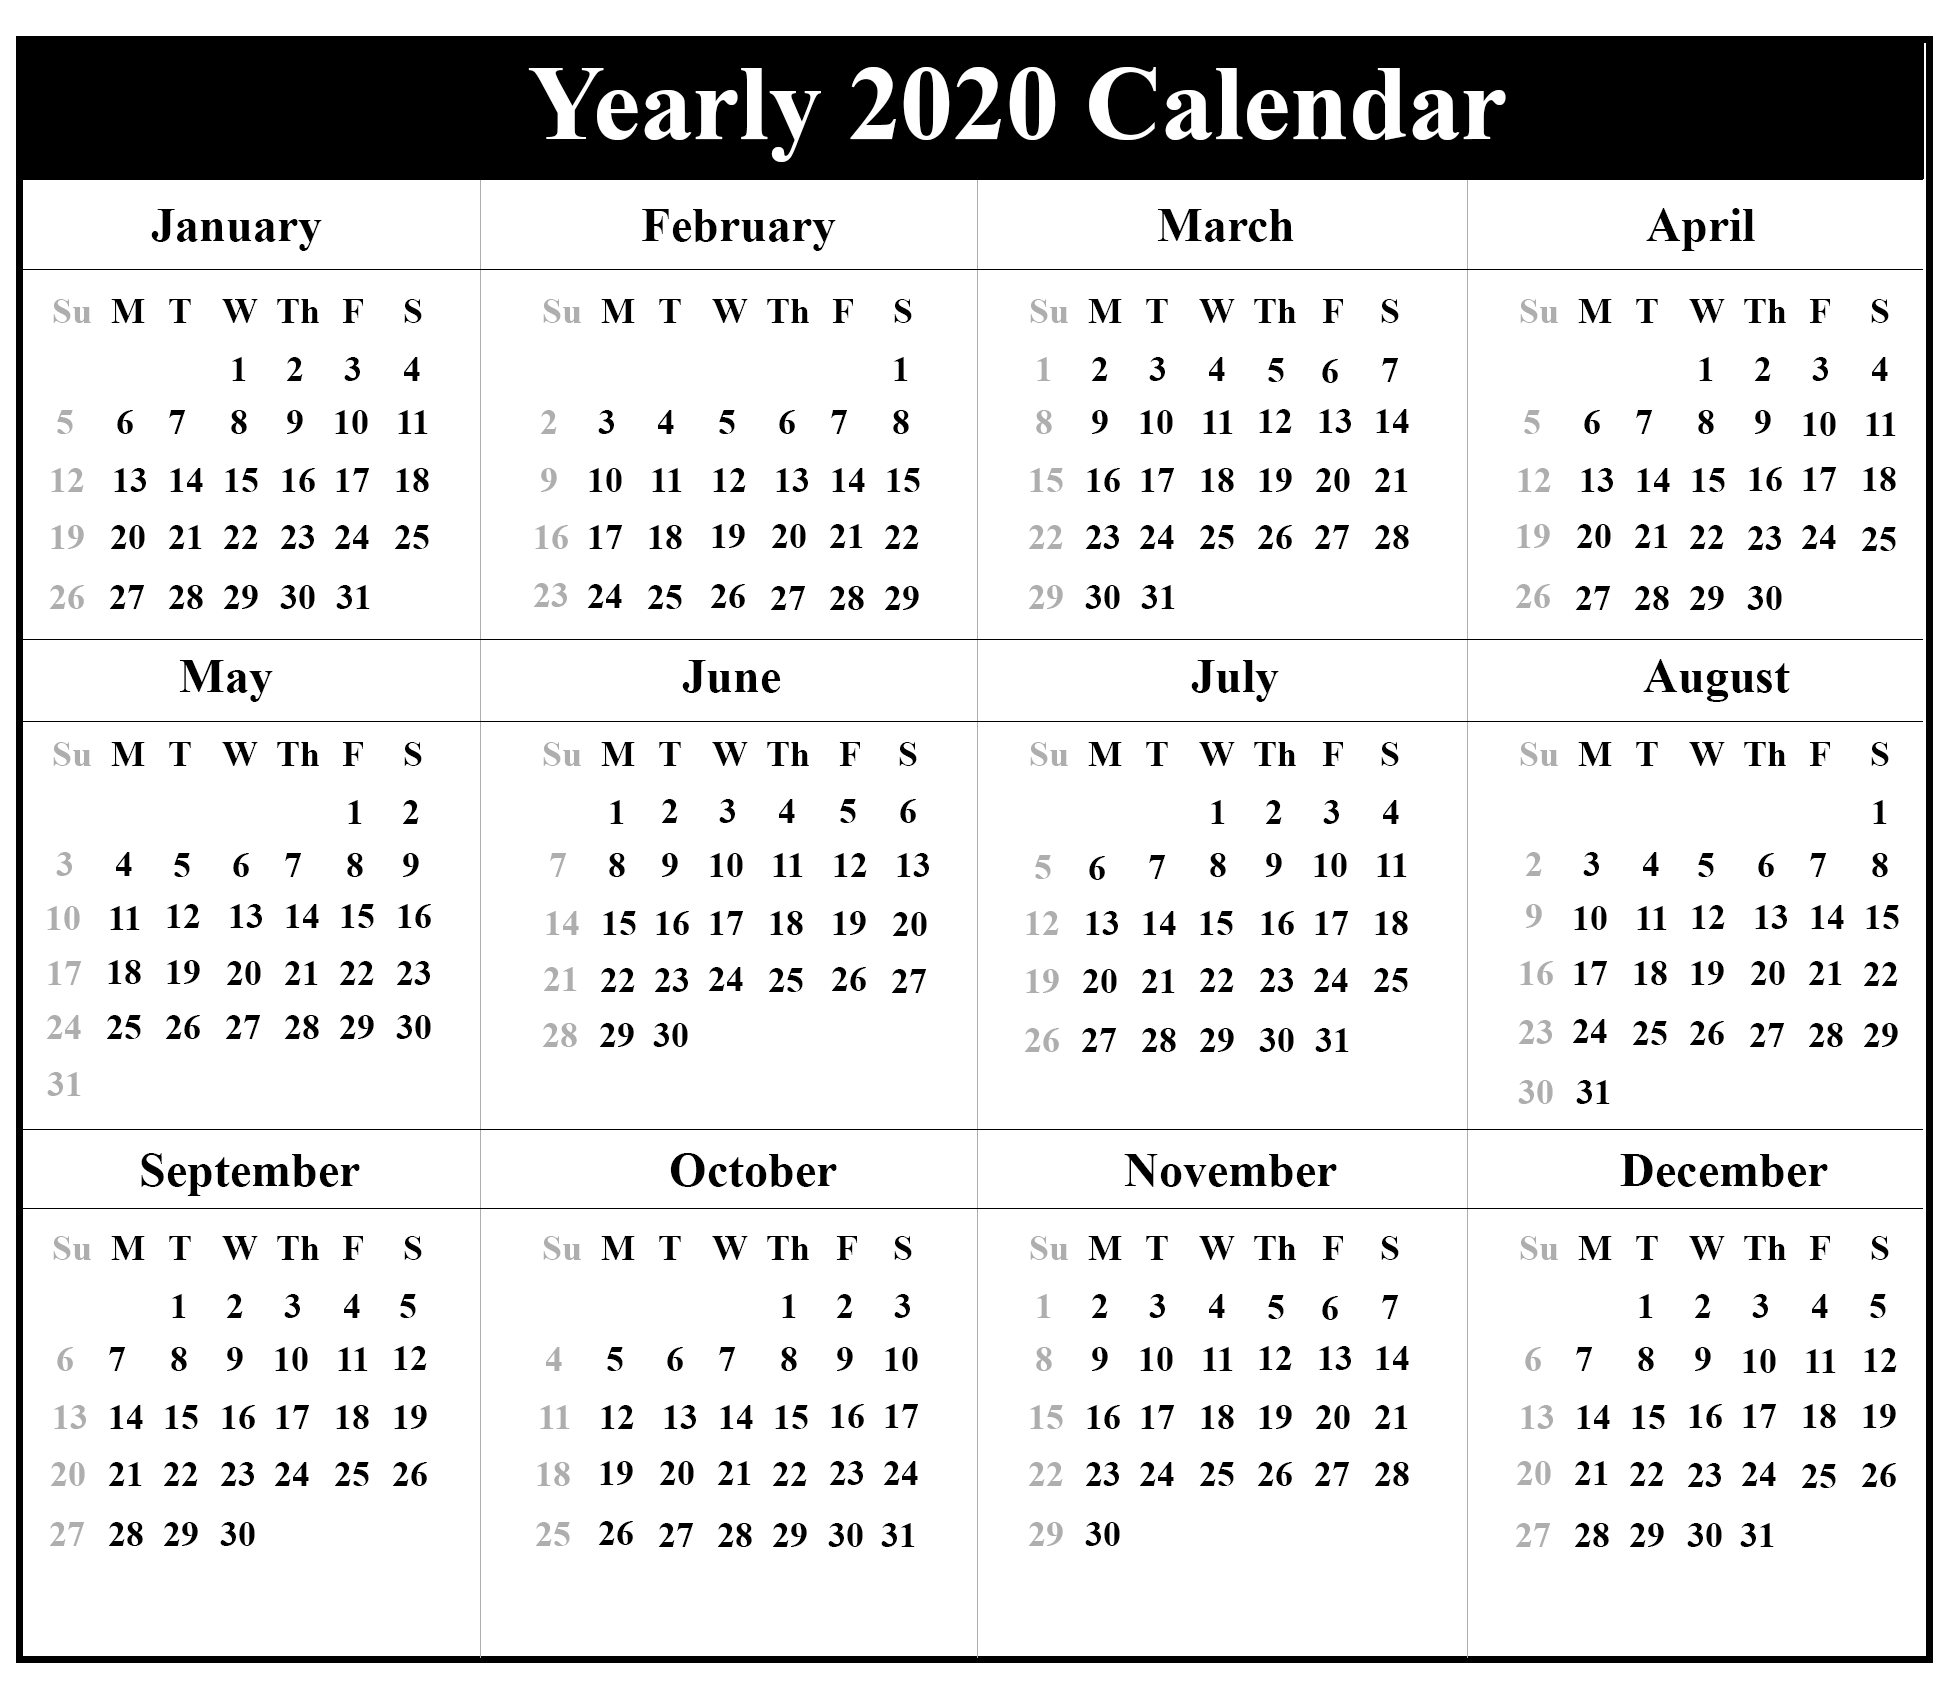 Printable Yearly Calendar 2020 Template With Holidays [Pdf-January 2020 Calendar Pongal